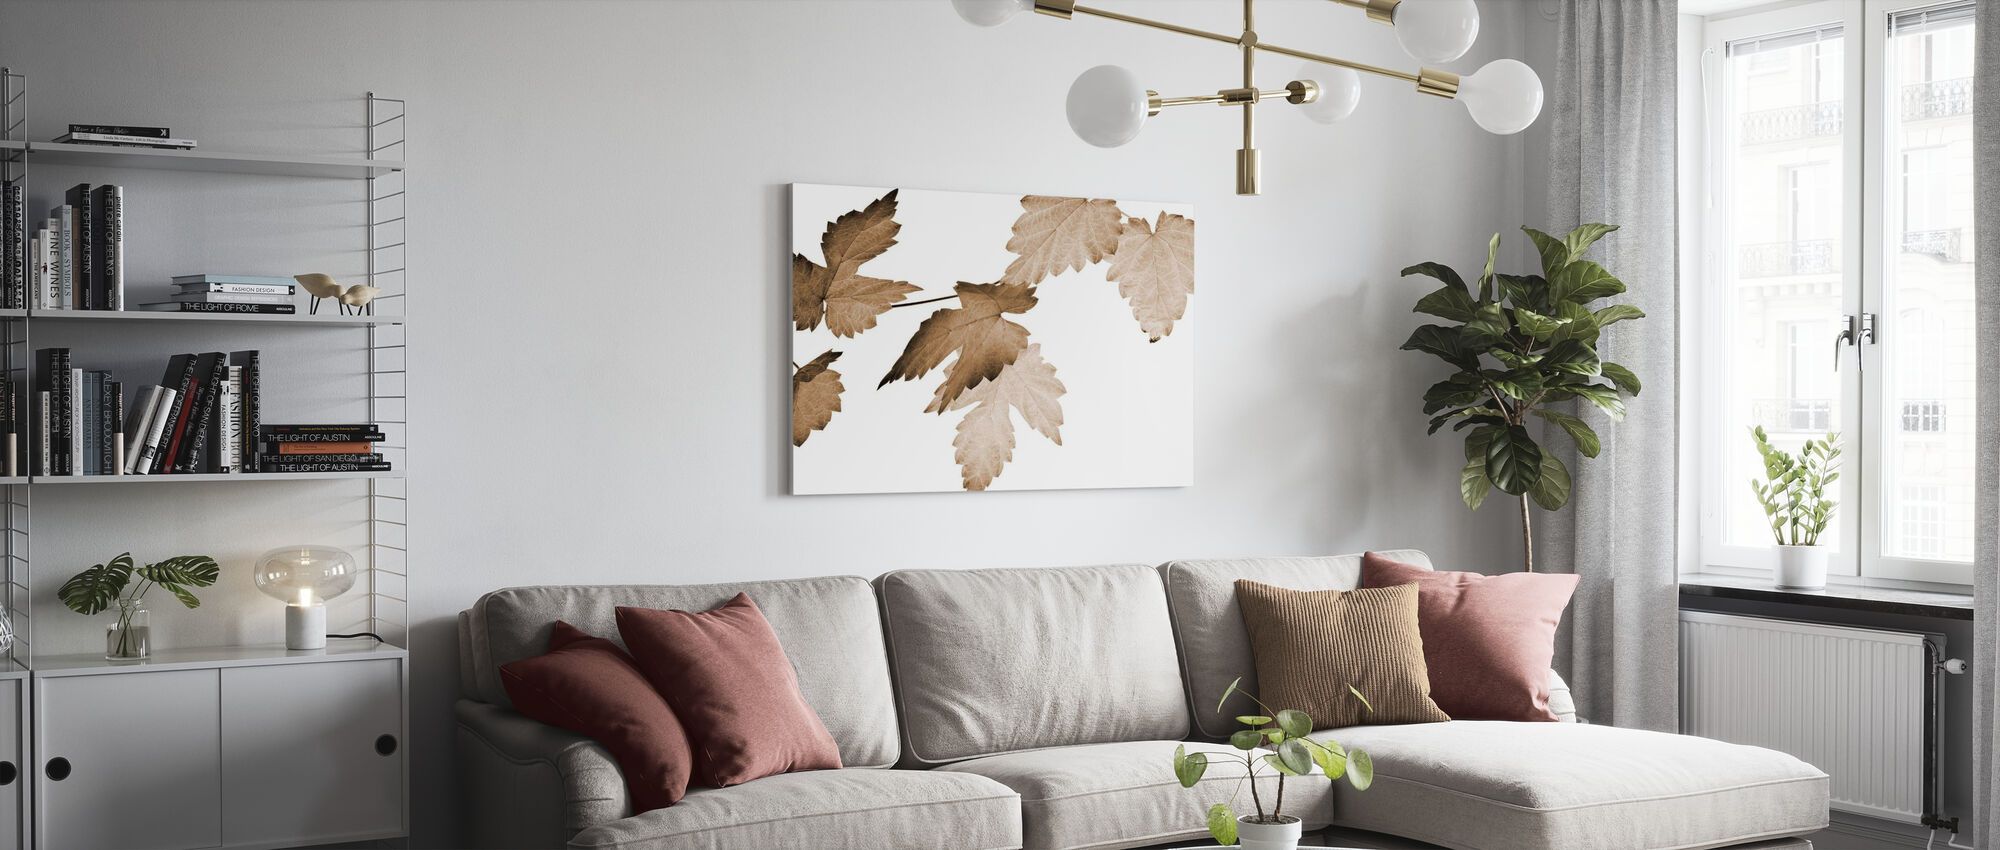 Dancing Autumn Leaves - Canvas print - Living Room